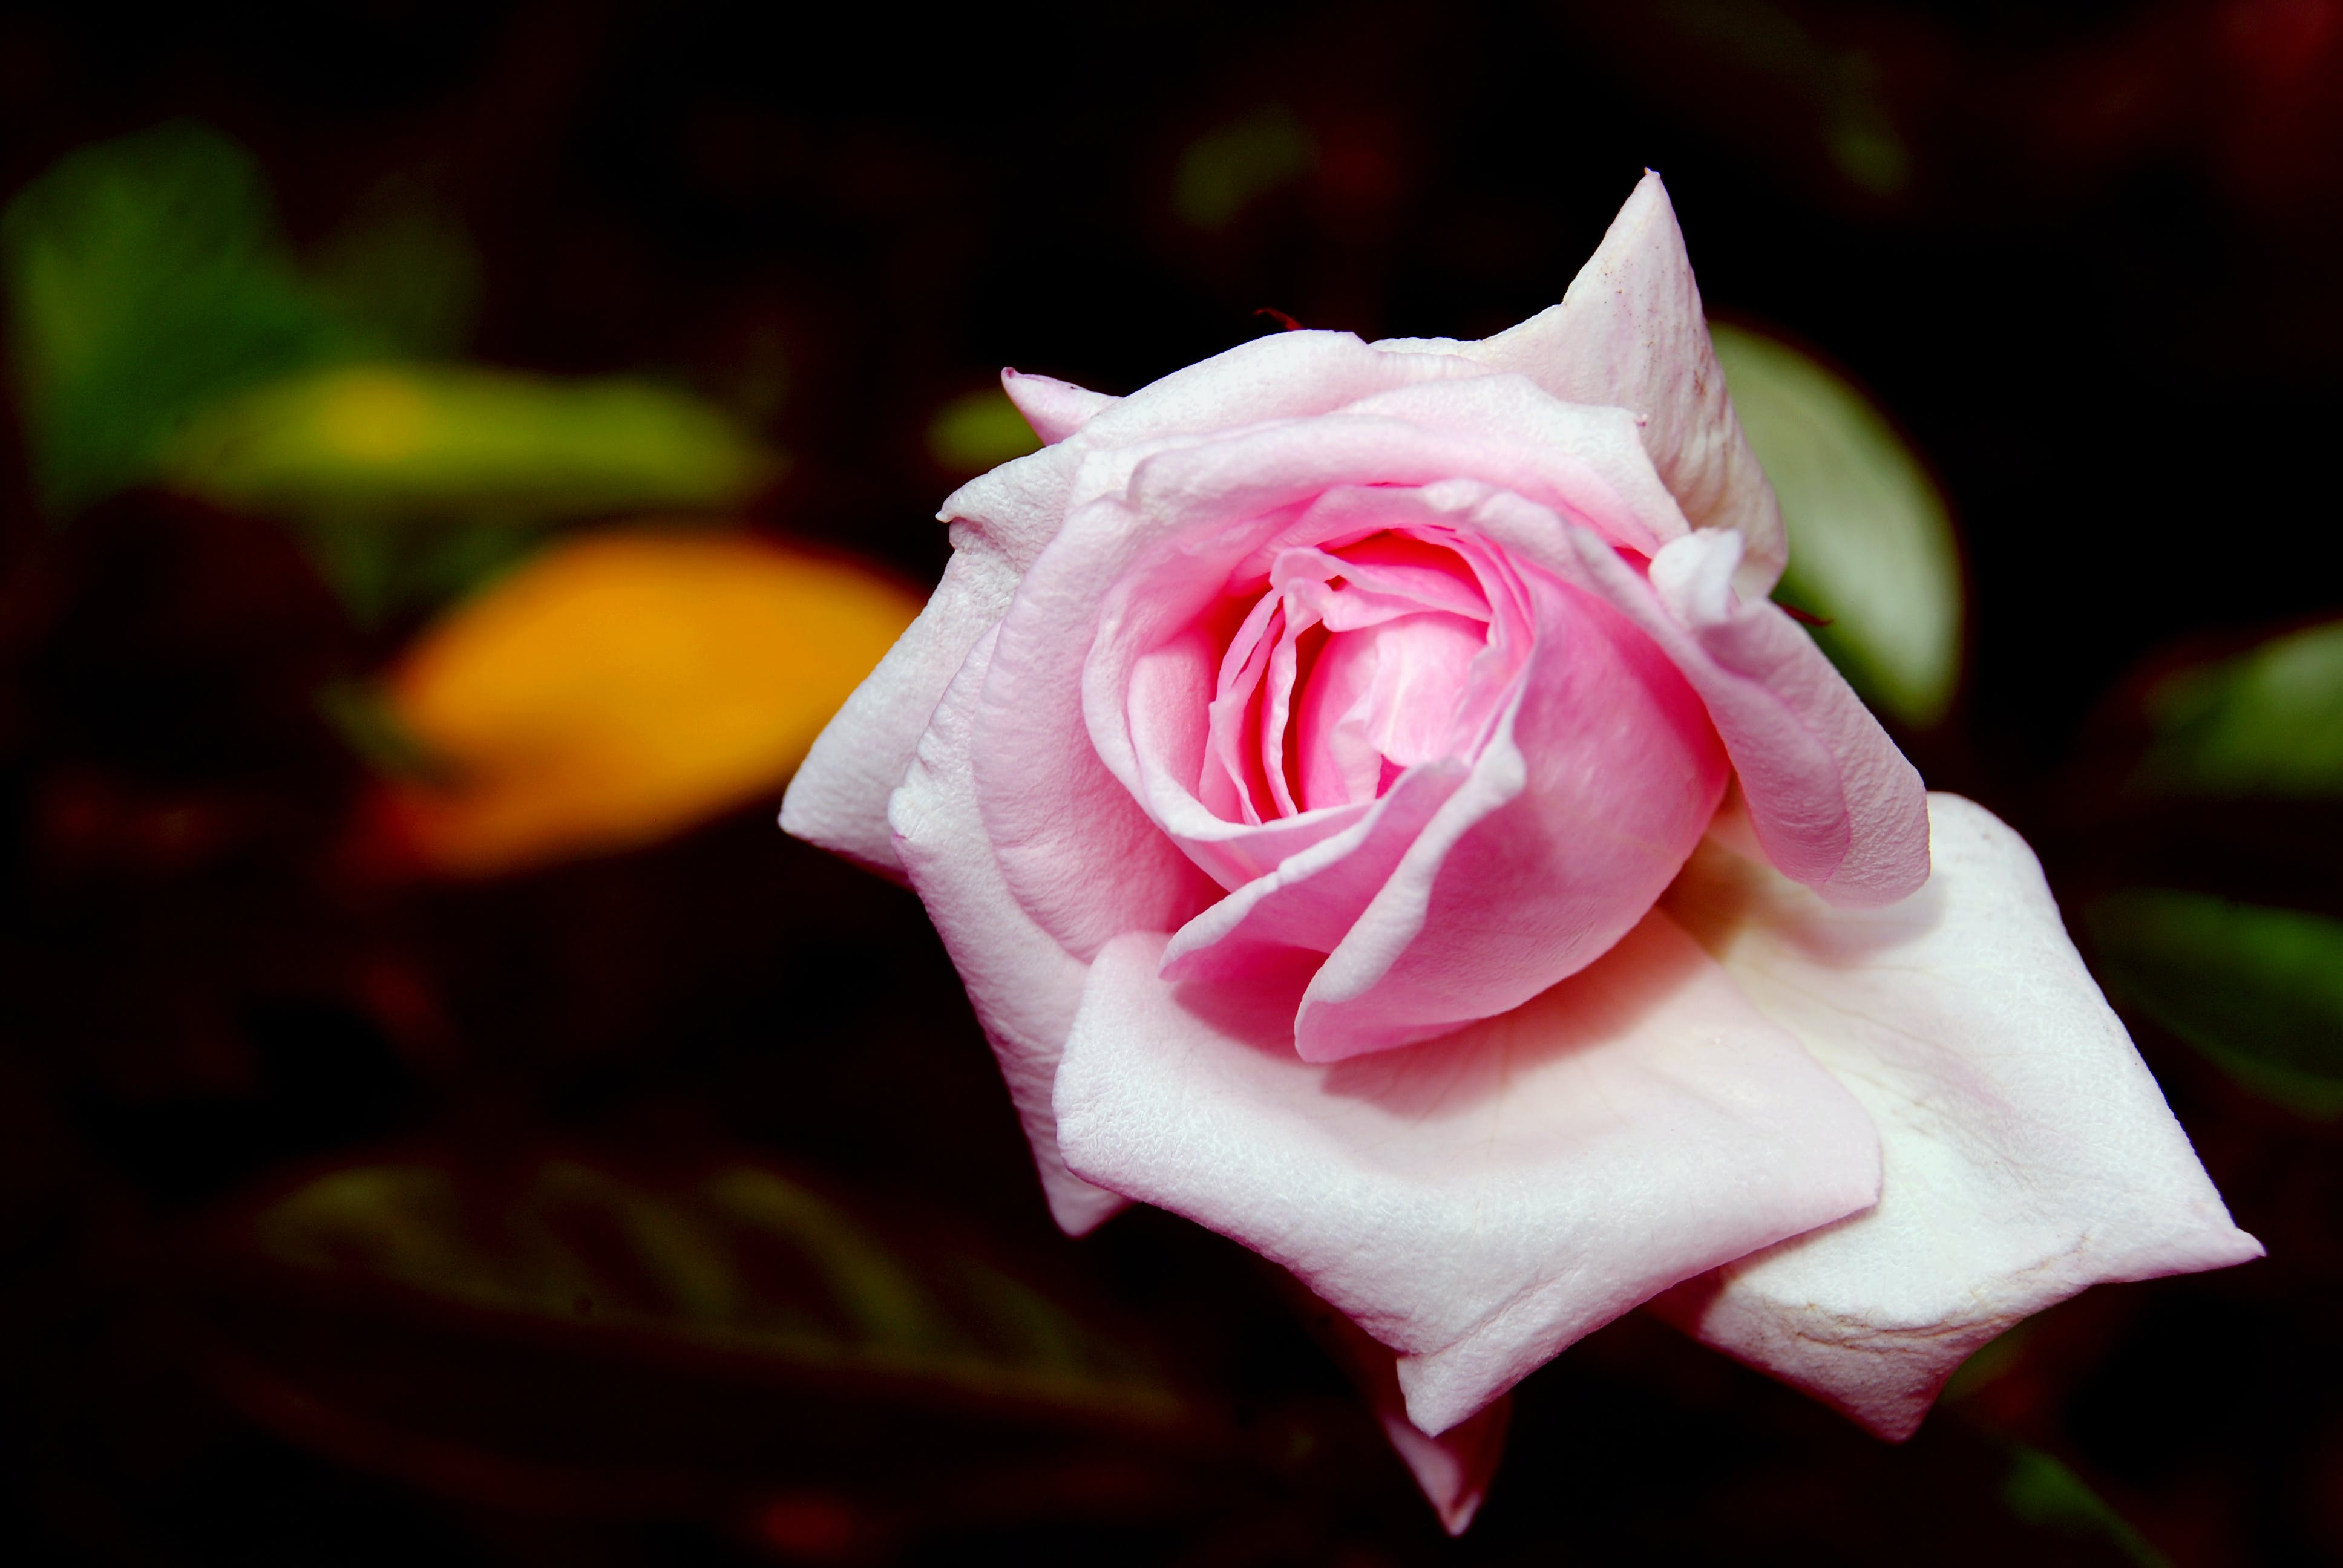 Closeup Photo of Pink Rose Flower